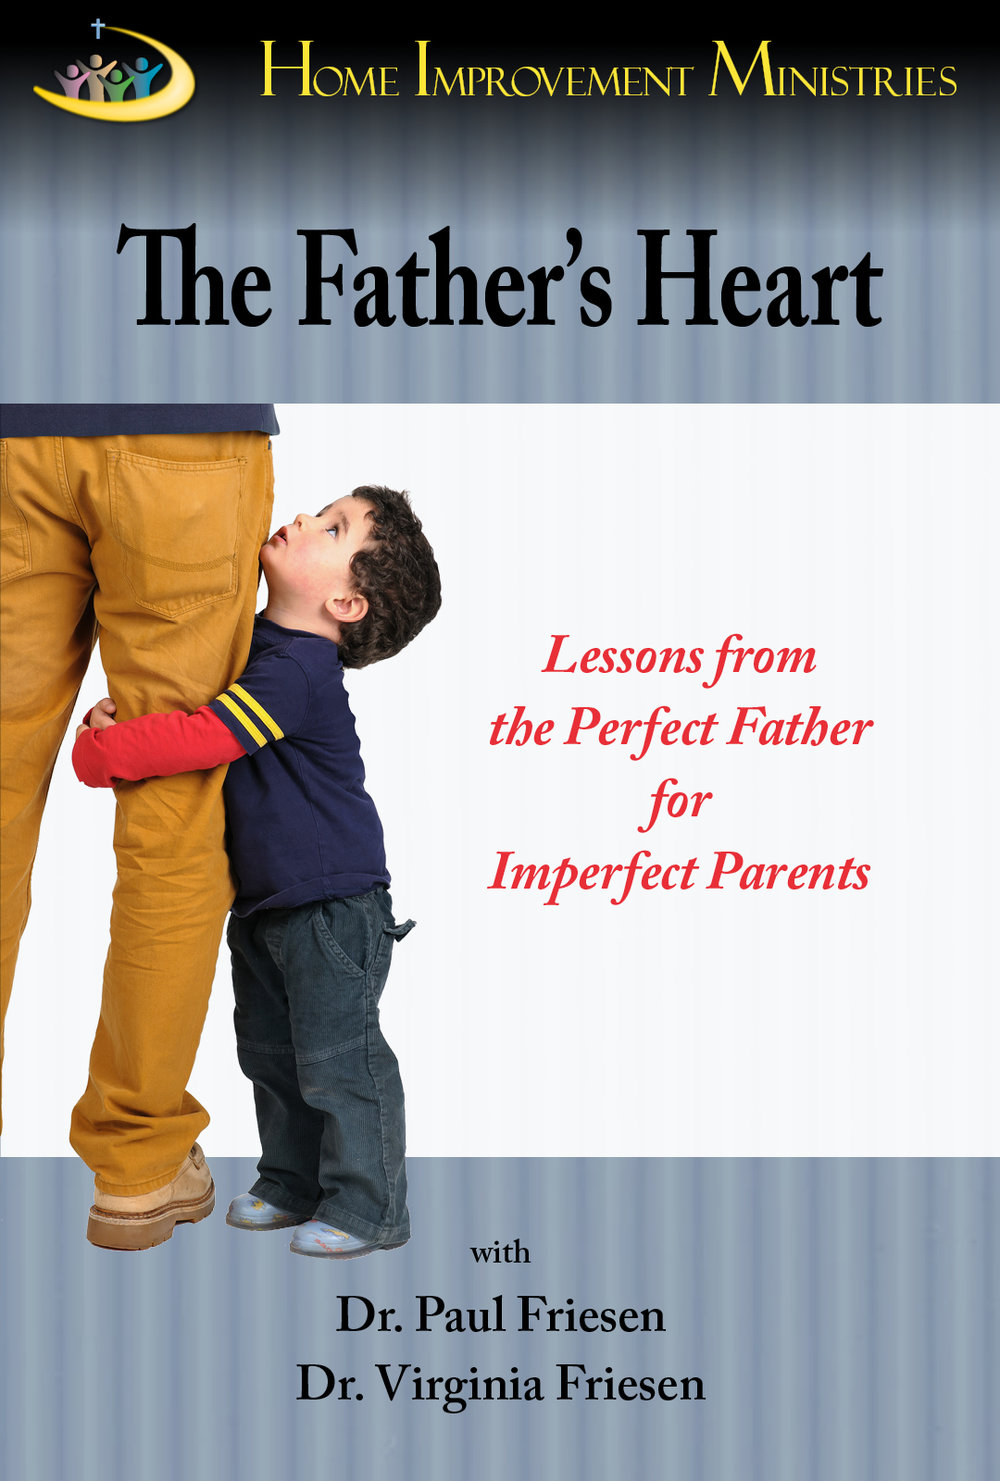 The Father's Heart - In a day where we as parents often long for mentors, this video series points us to the only perfect mentor and model we will ever have.  Instead of shaping our Heavenly Father's image from that of our earthly father, let's shape our earthly parenting from our Heavenly Father.  This series draws on God's love and compassion for us, yet is very practical as the principles of scripture become tools to help families to more fully reflect the image God in all they do and are.